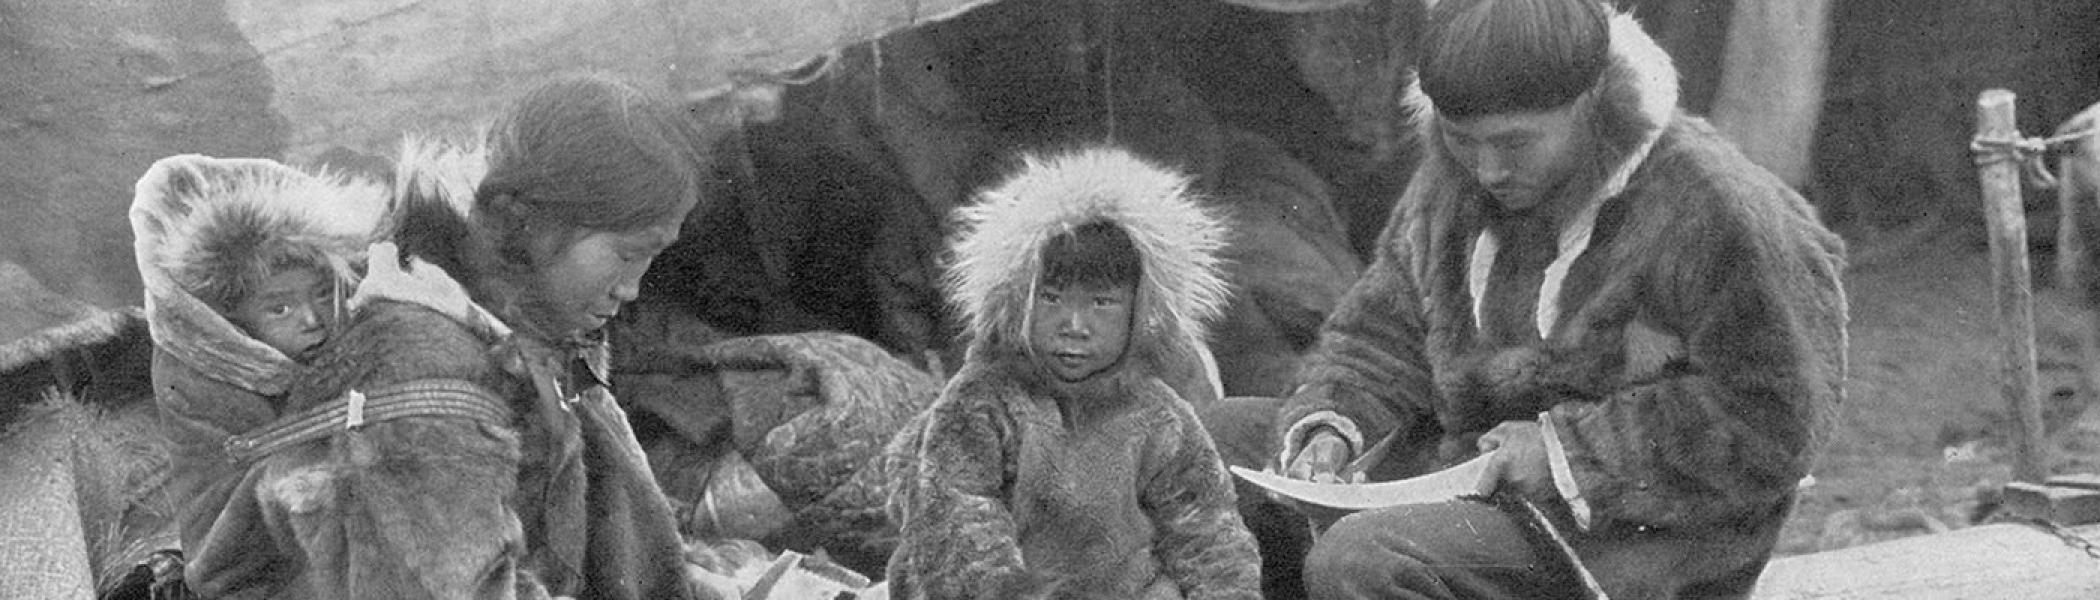 image from early 21st century of Inuit family